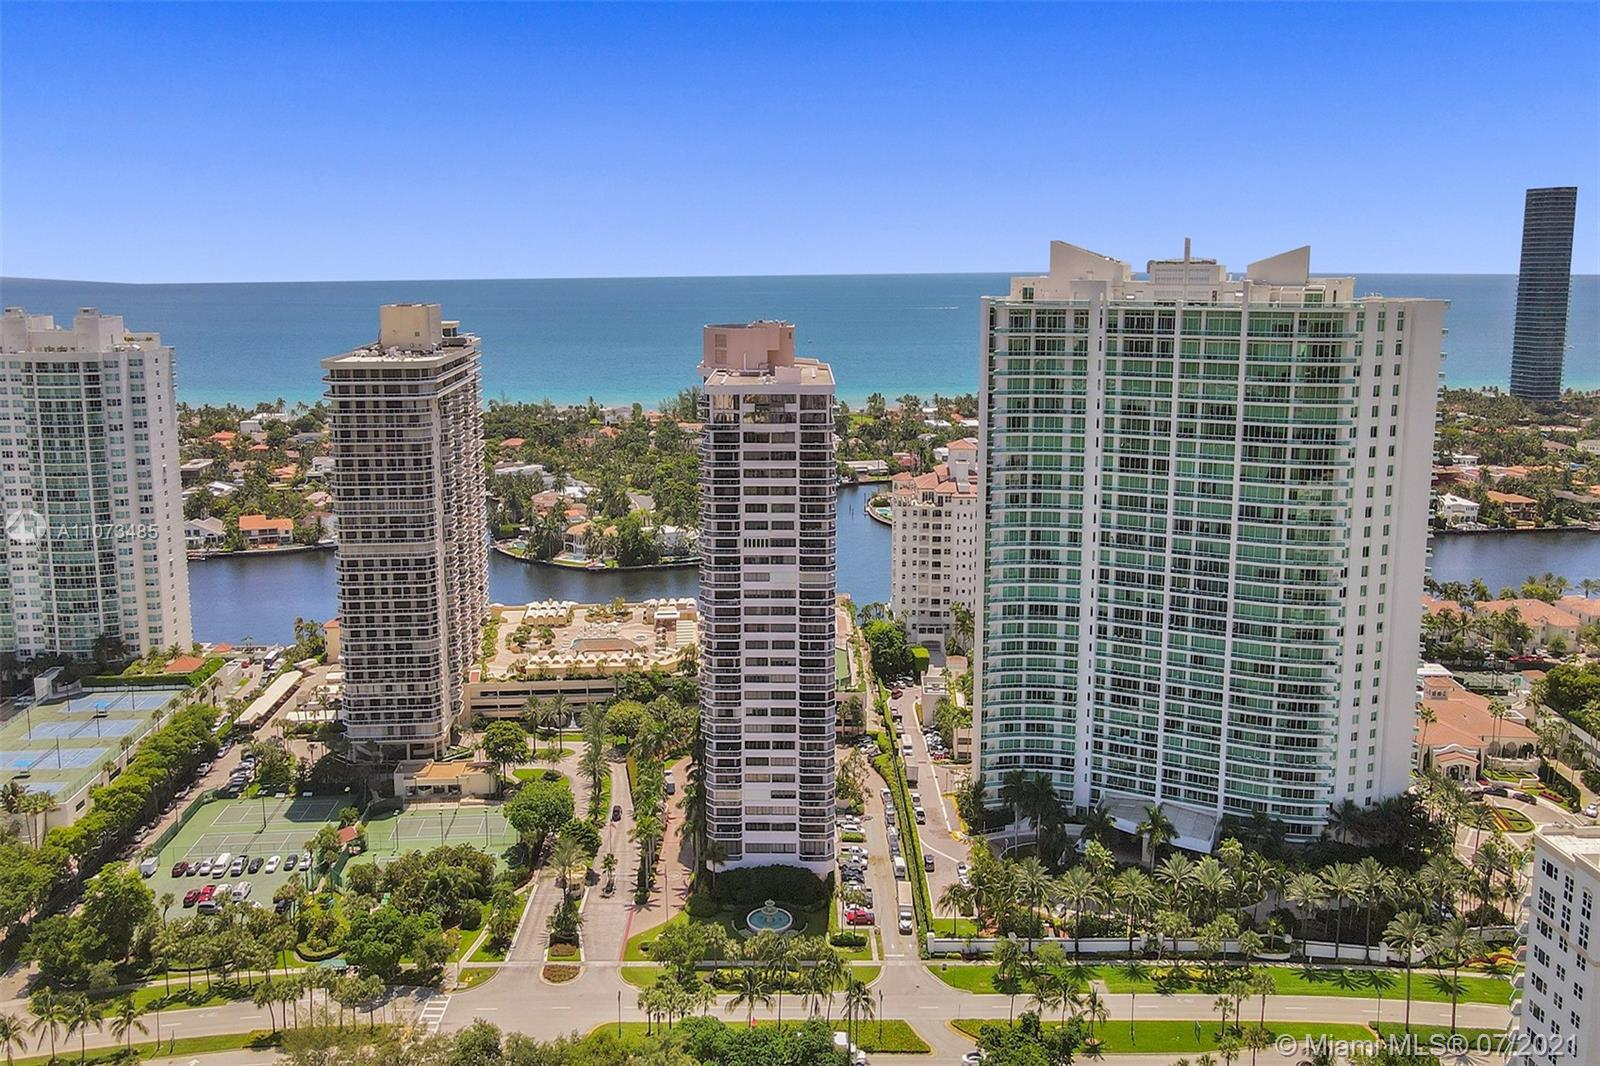 Enjoy the Golf Course and sunset views from this charming 2 bed/ 2 bath condo in The Landmark Aventu